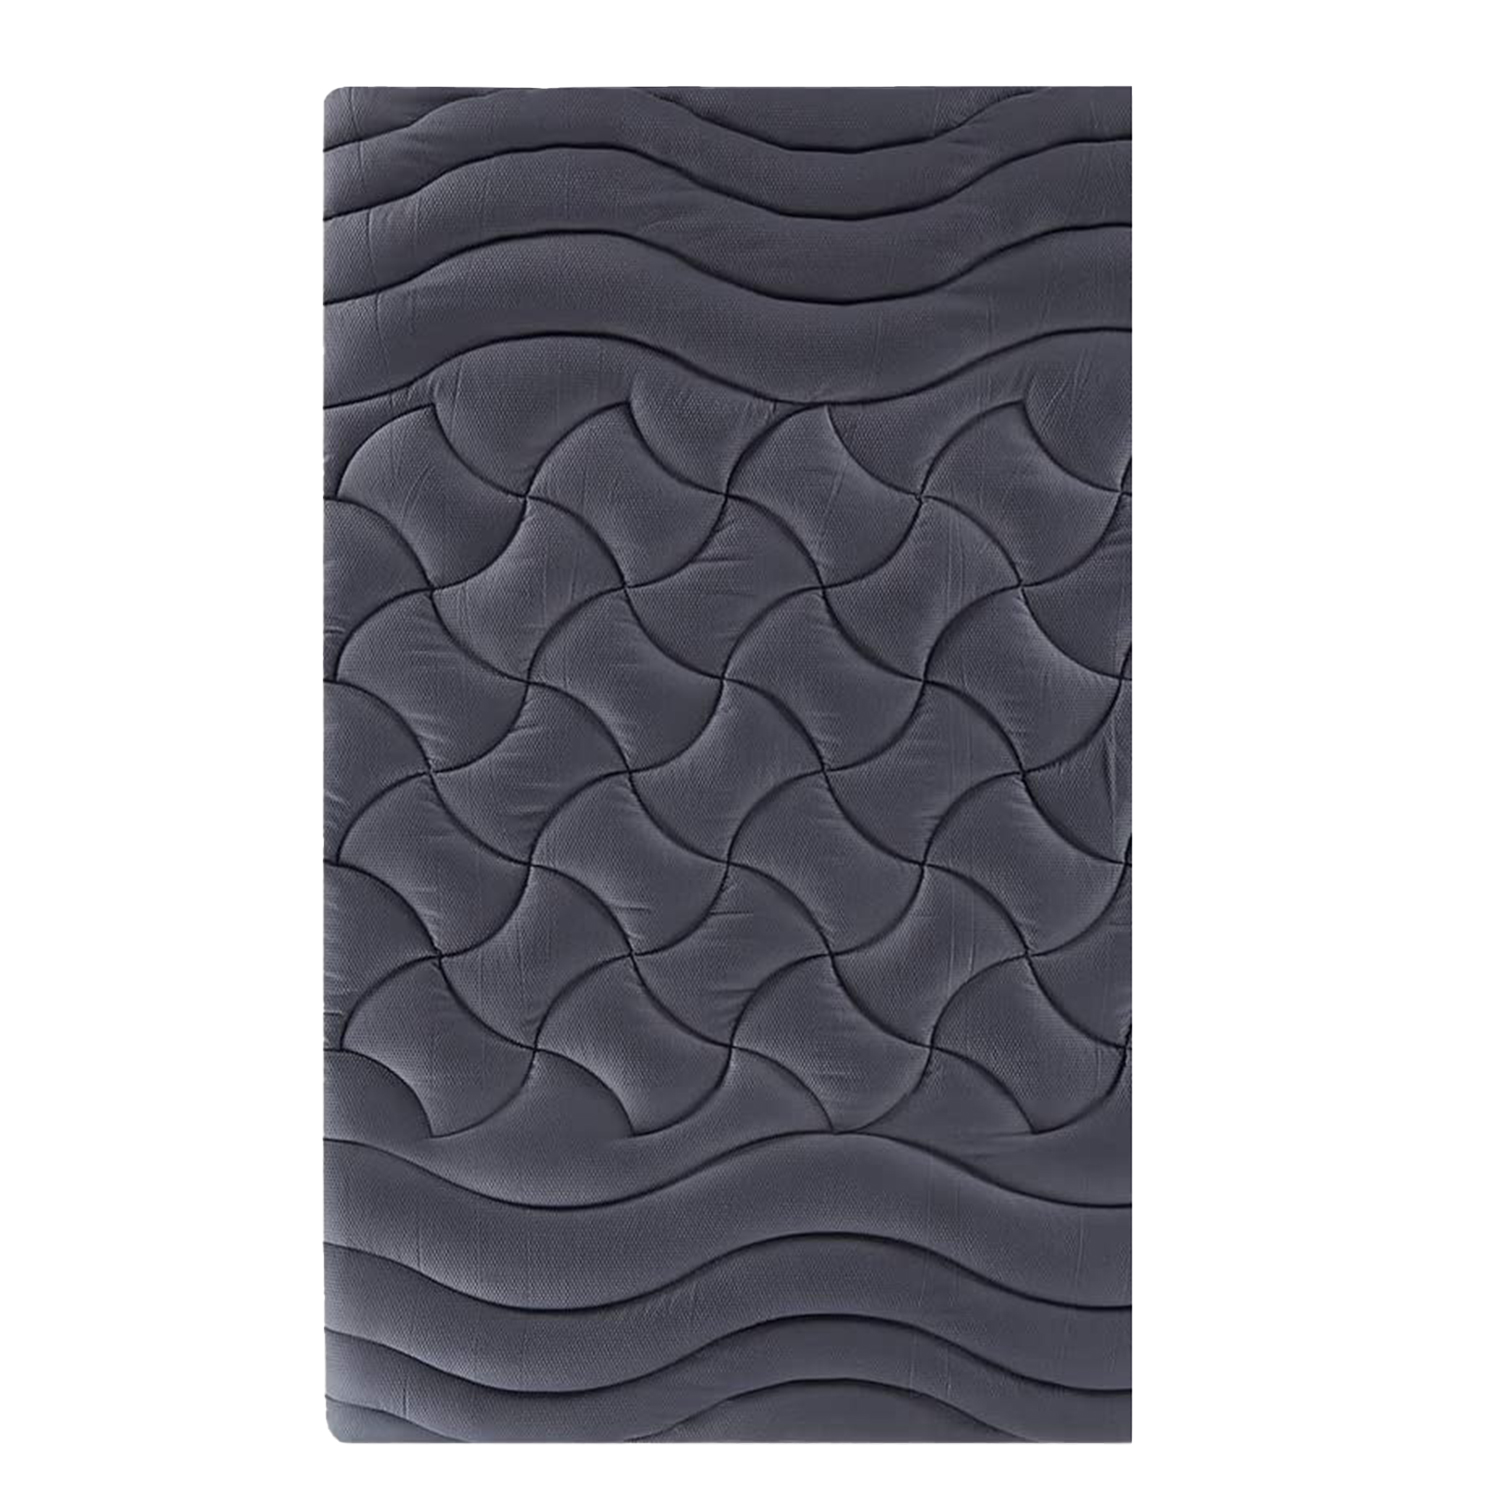 SLEEP ZONE Premium Mattress Pad Cover Cooling Overfilled